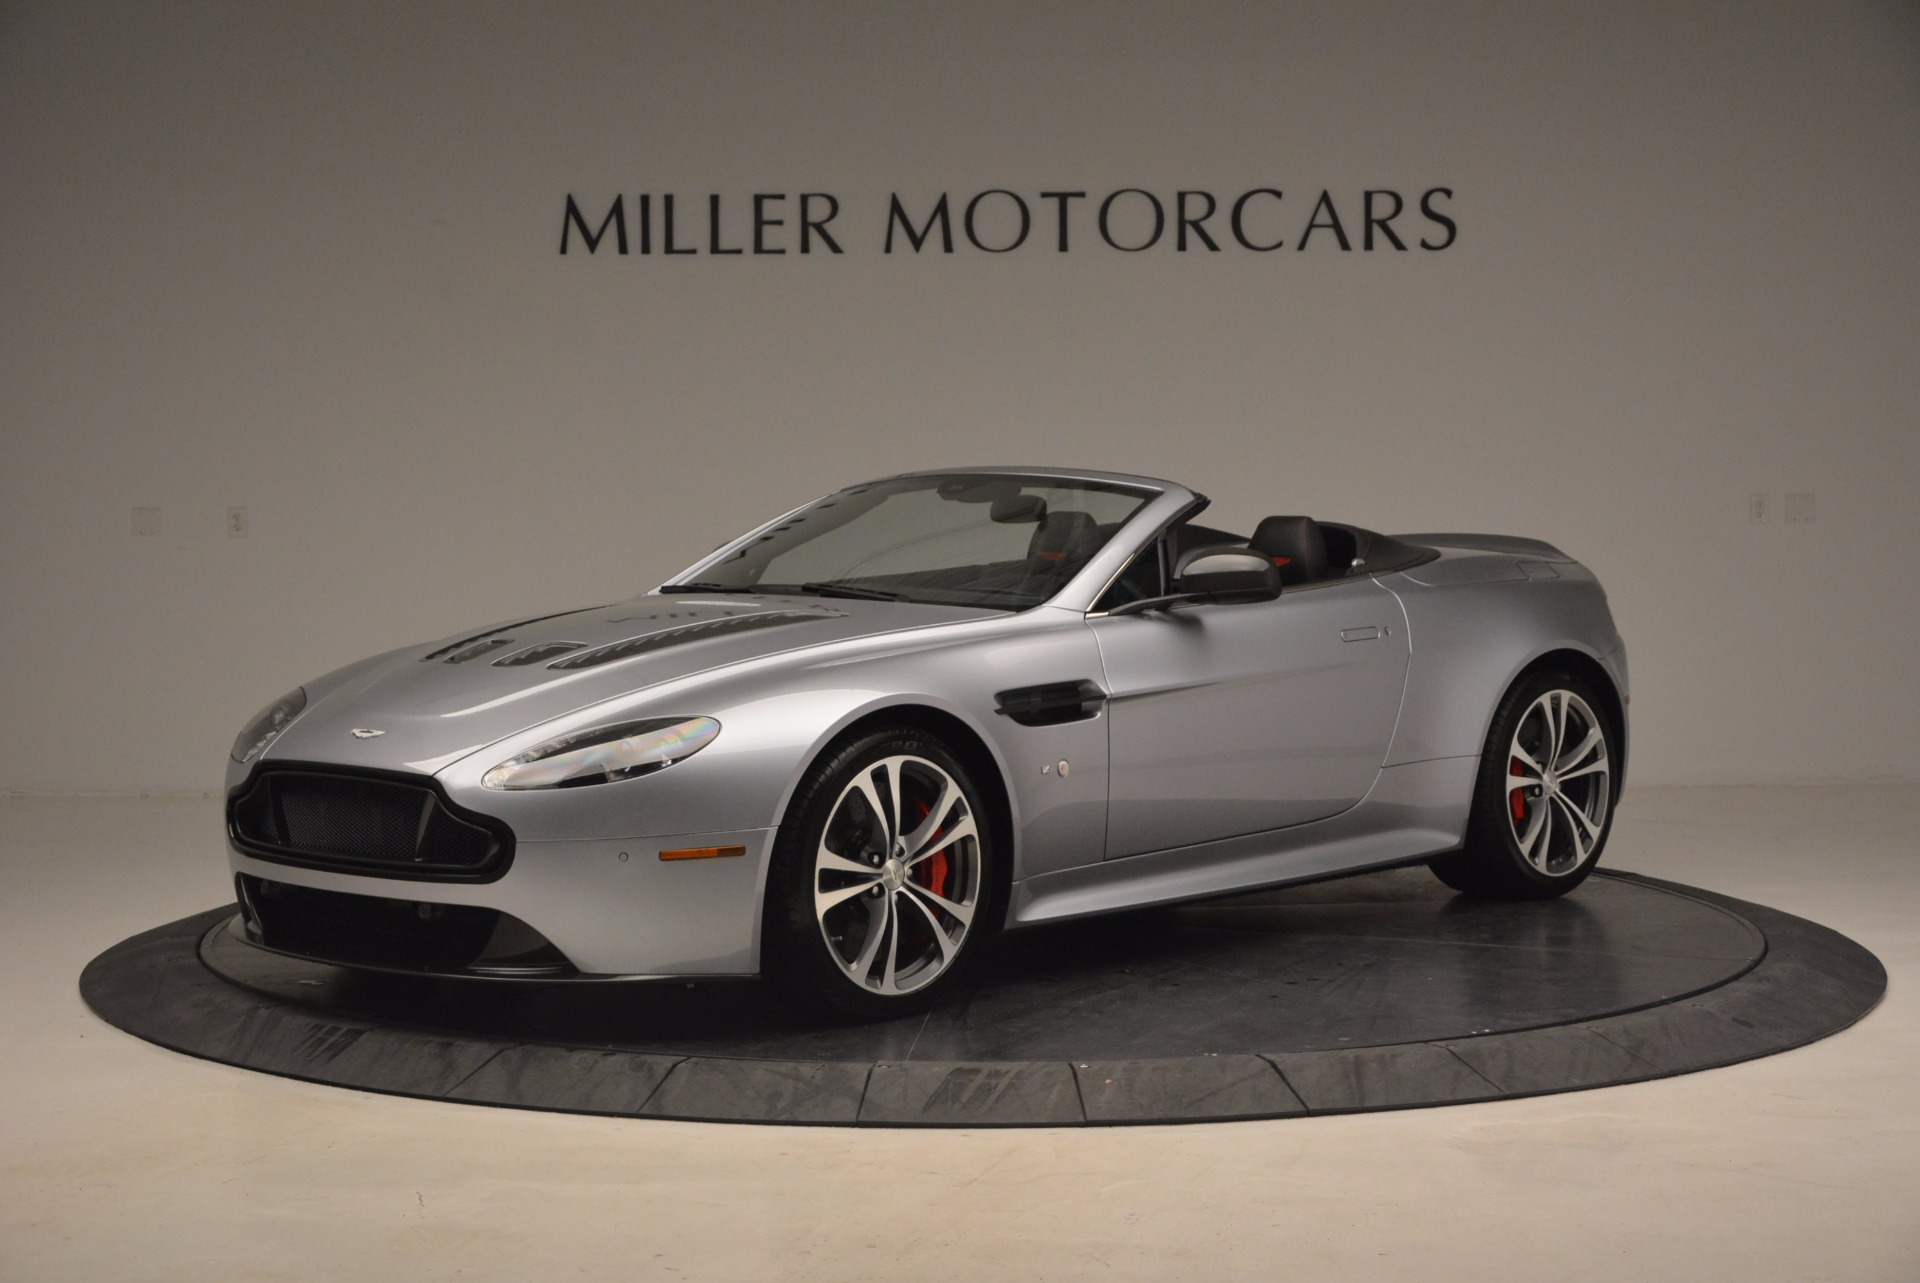 Used 2015 Aston Martin V12 Vantage S Roadster for sale Sold at Rolls-Royce Motor Cars Greenwich in Greenwich CT 06830 1